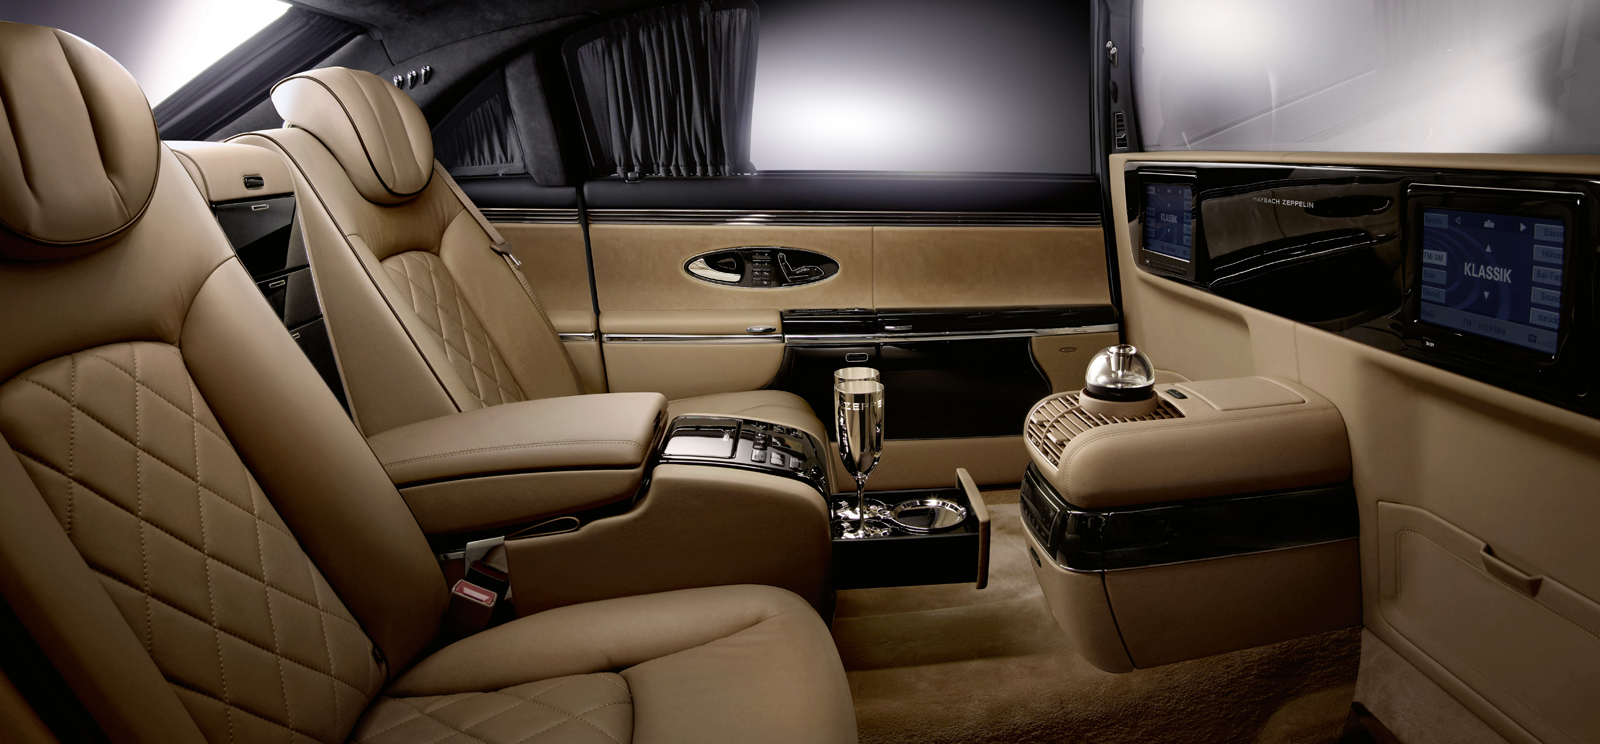 Rent Maybach 57 In Cannes Nice Monaco Saint Tropez